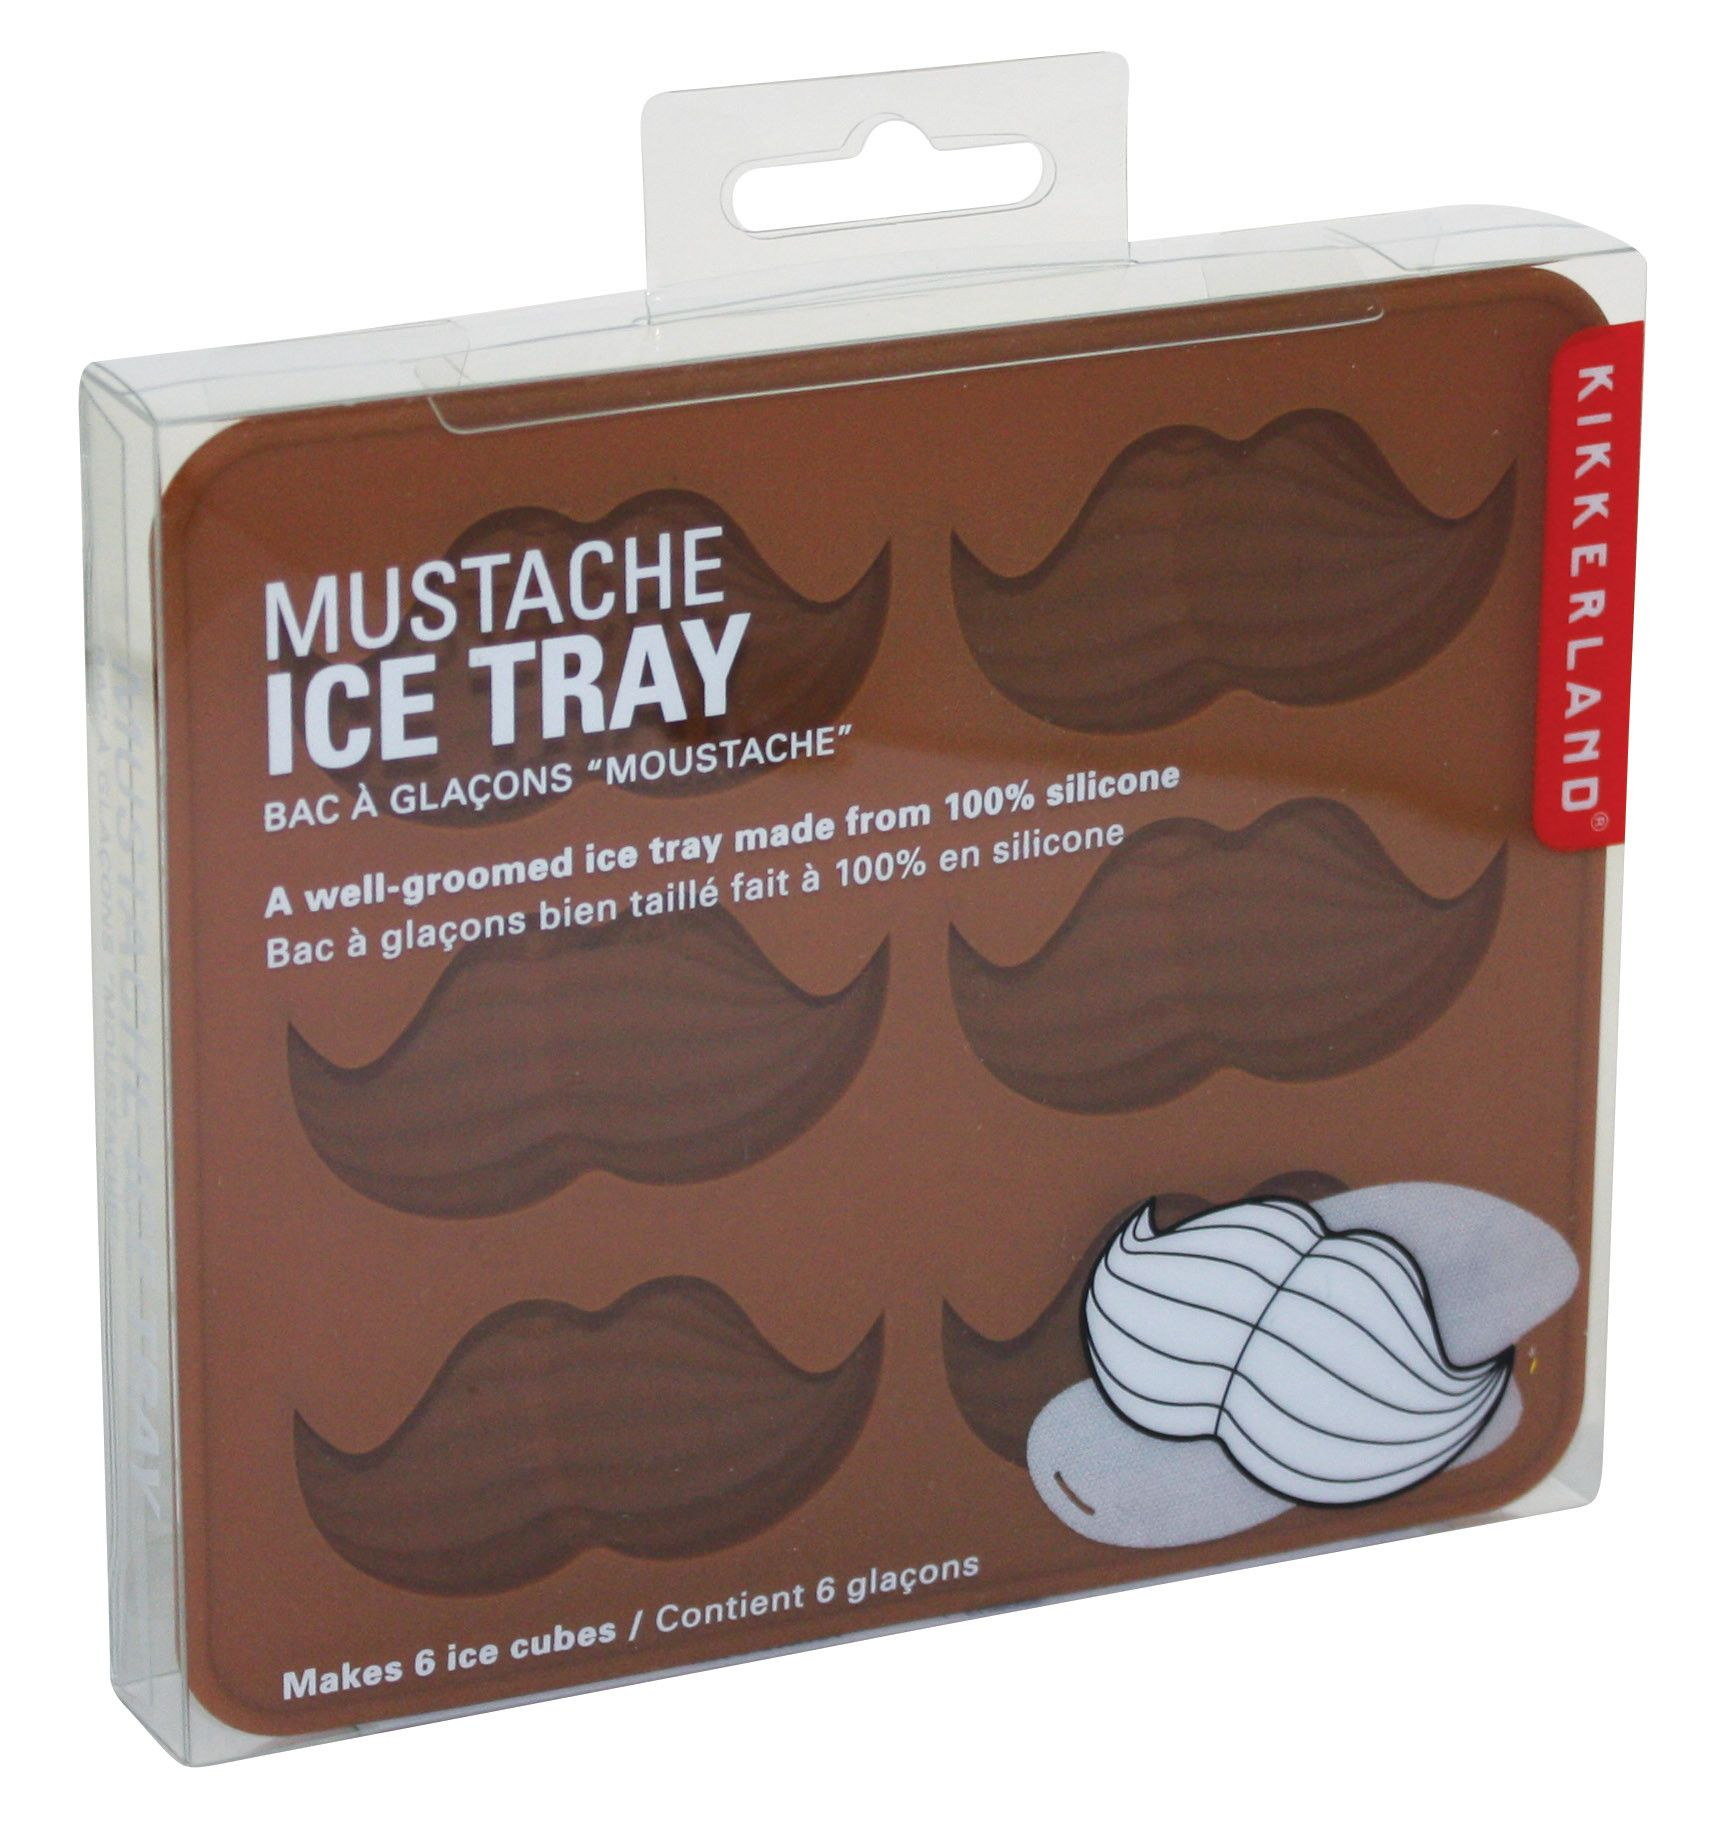 Moustache Ice Tray - Australian Gifts Online - 2